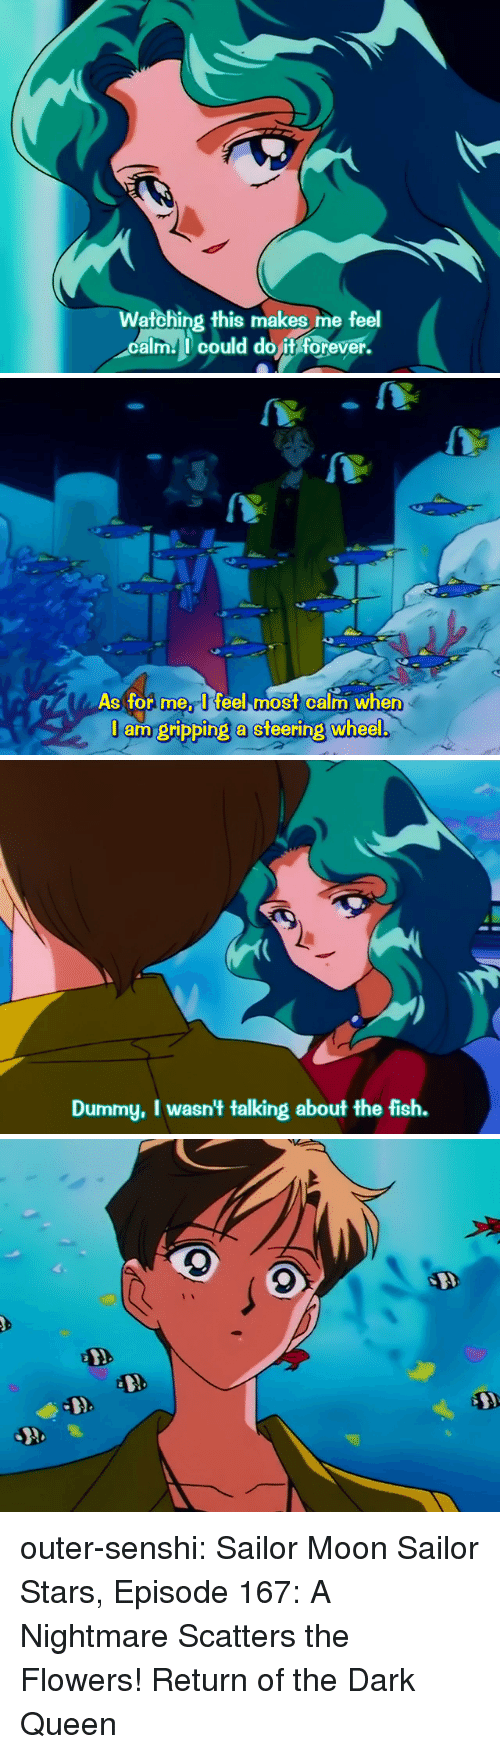 A Nightmare: Watching this makes me feel  calm could do it forever.   As for meI feel most calm when  J am gripping a steering wheel   Dummy, I wasn't talking about the fish. outer-senshi:  Sailor Moon Sailor Stars, Episode 167: A Nightmare Scatters the Flowers! Return of the Dark Queen